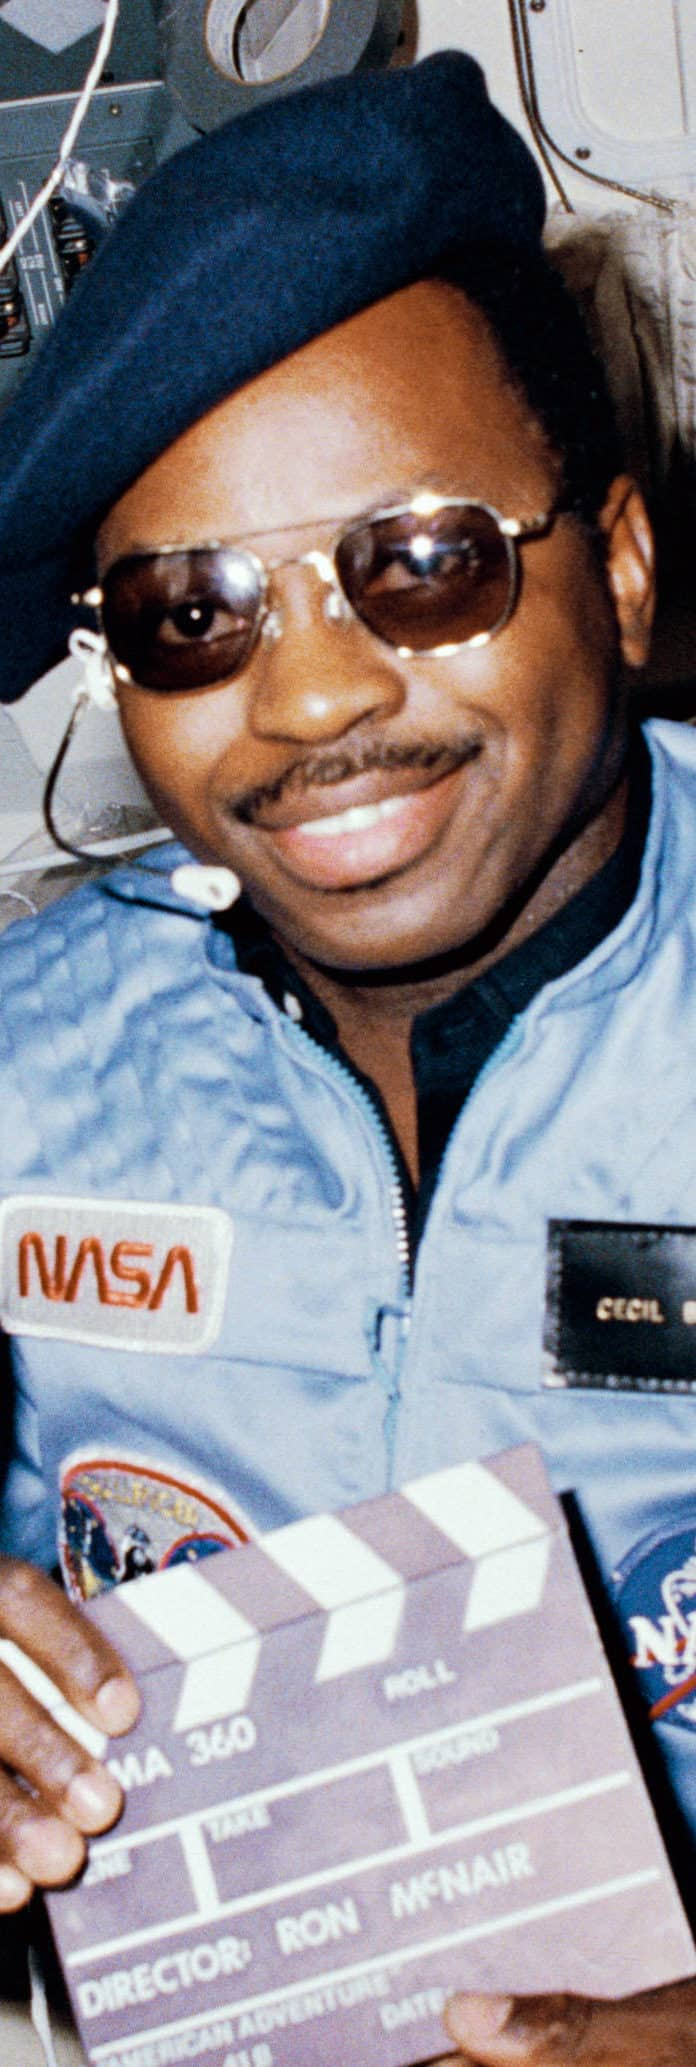 30 Facts About Challenger Astronaut, Ronald McNair